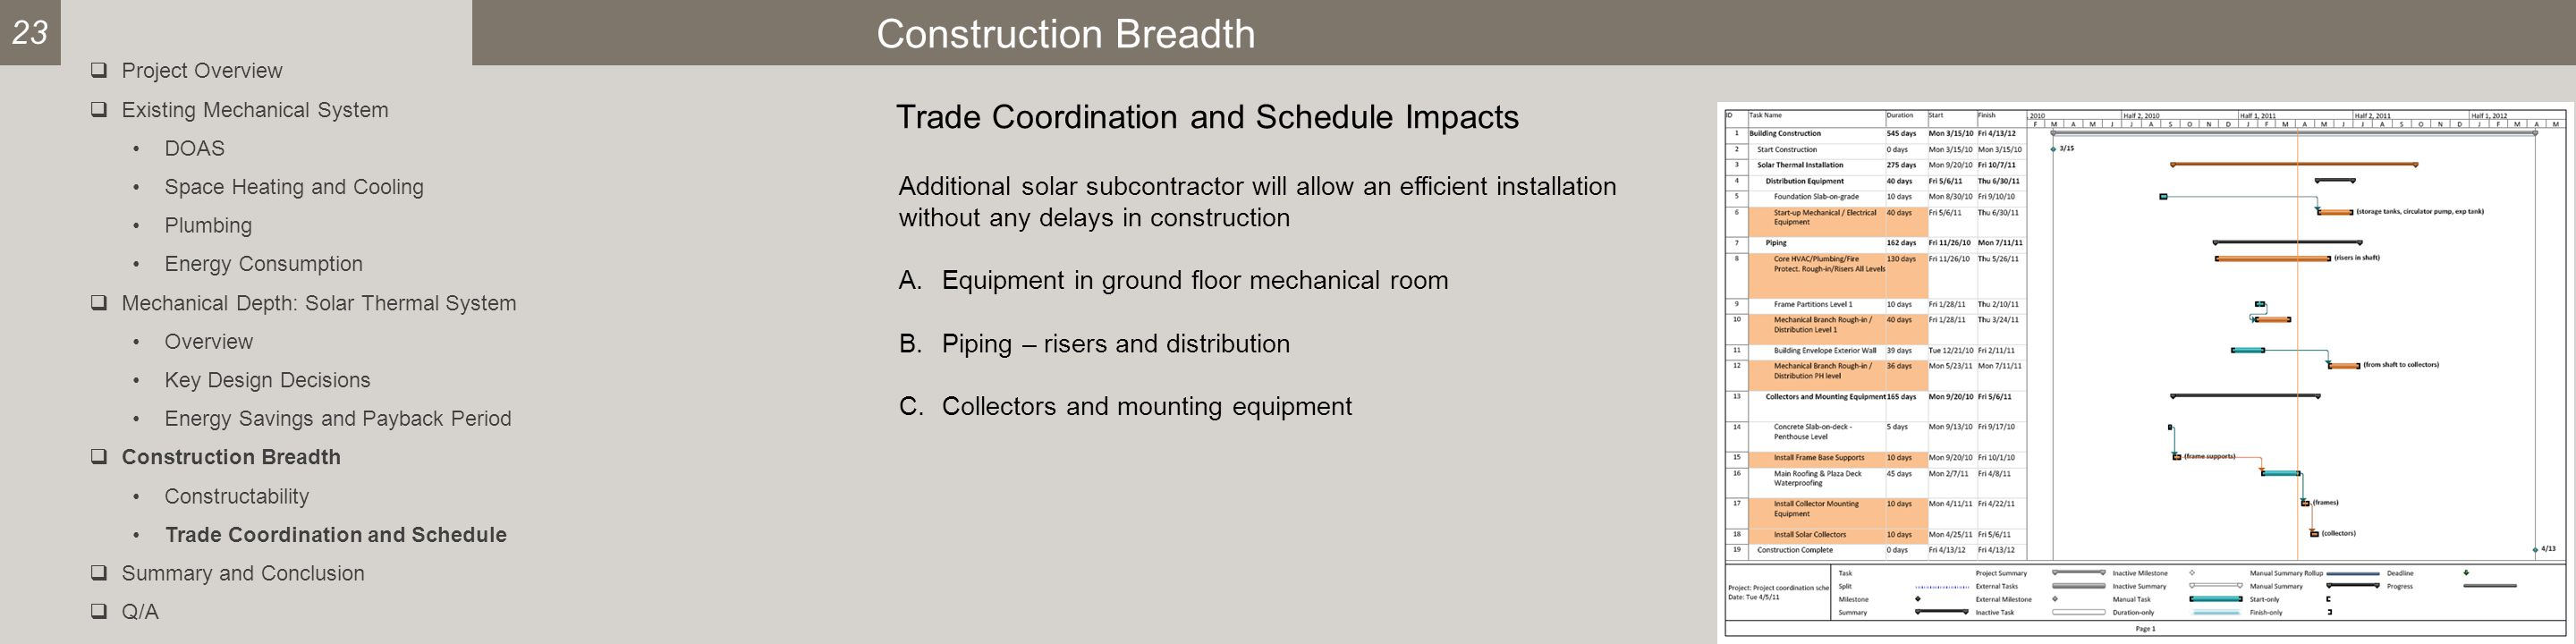 Construction Breadth Trade Coordination and Schedule Impacts 23 Additional solar subcontractor will allow an efficient installation without any delays in construction A.Equipment in ground floor mechanical room B.Piping – risers and distribution C.Collectors and mounting equipment  Project Overview  Existing Mechanical System DOAS Space Heating and Cooling Plumbing Energy Consumption  Mechanical Depth: Solar Thermal System Overview Key Design Decisions Energy Savings and Payback Period  Construction Breadth Constructability Trade Coordination and Schedule  Summary and Conclusion  Q/A